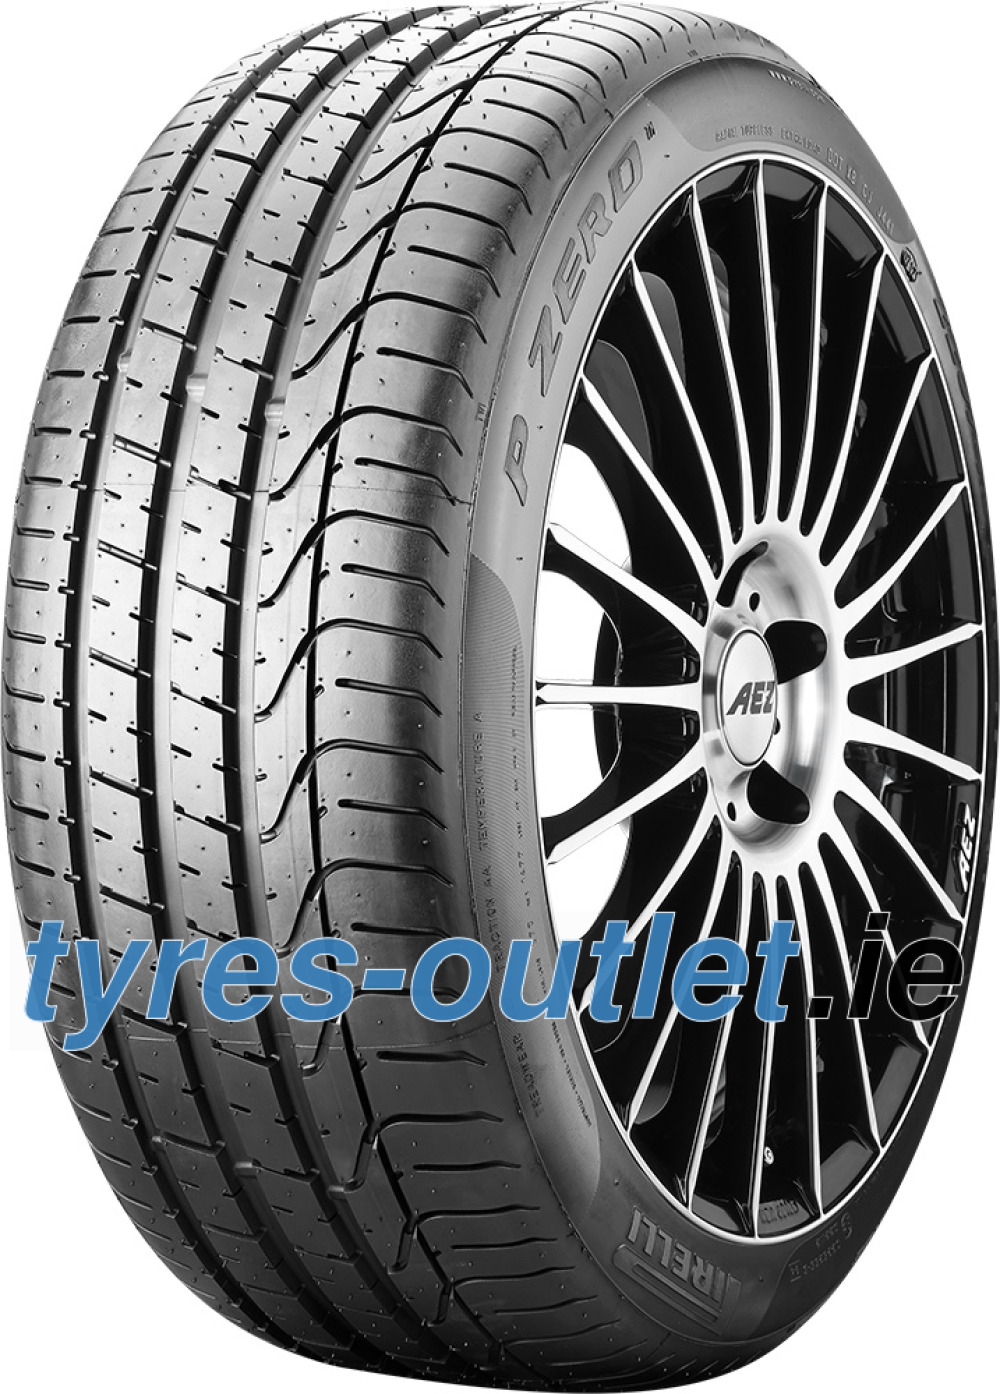 Pirelli P Zero ( 275/30 ZR20 (97Y) XL RO1, with rim protection (MFS) )